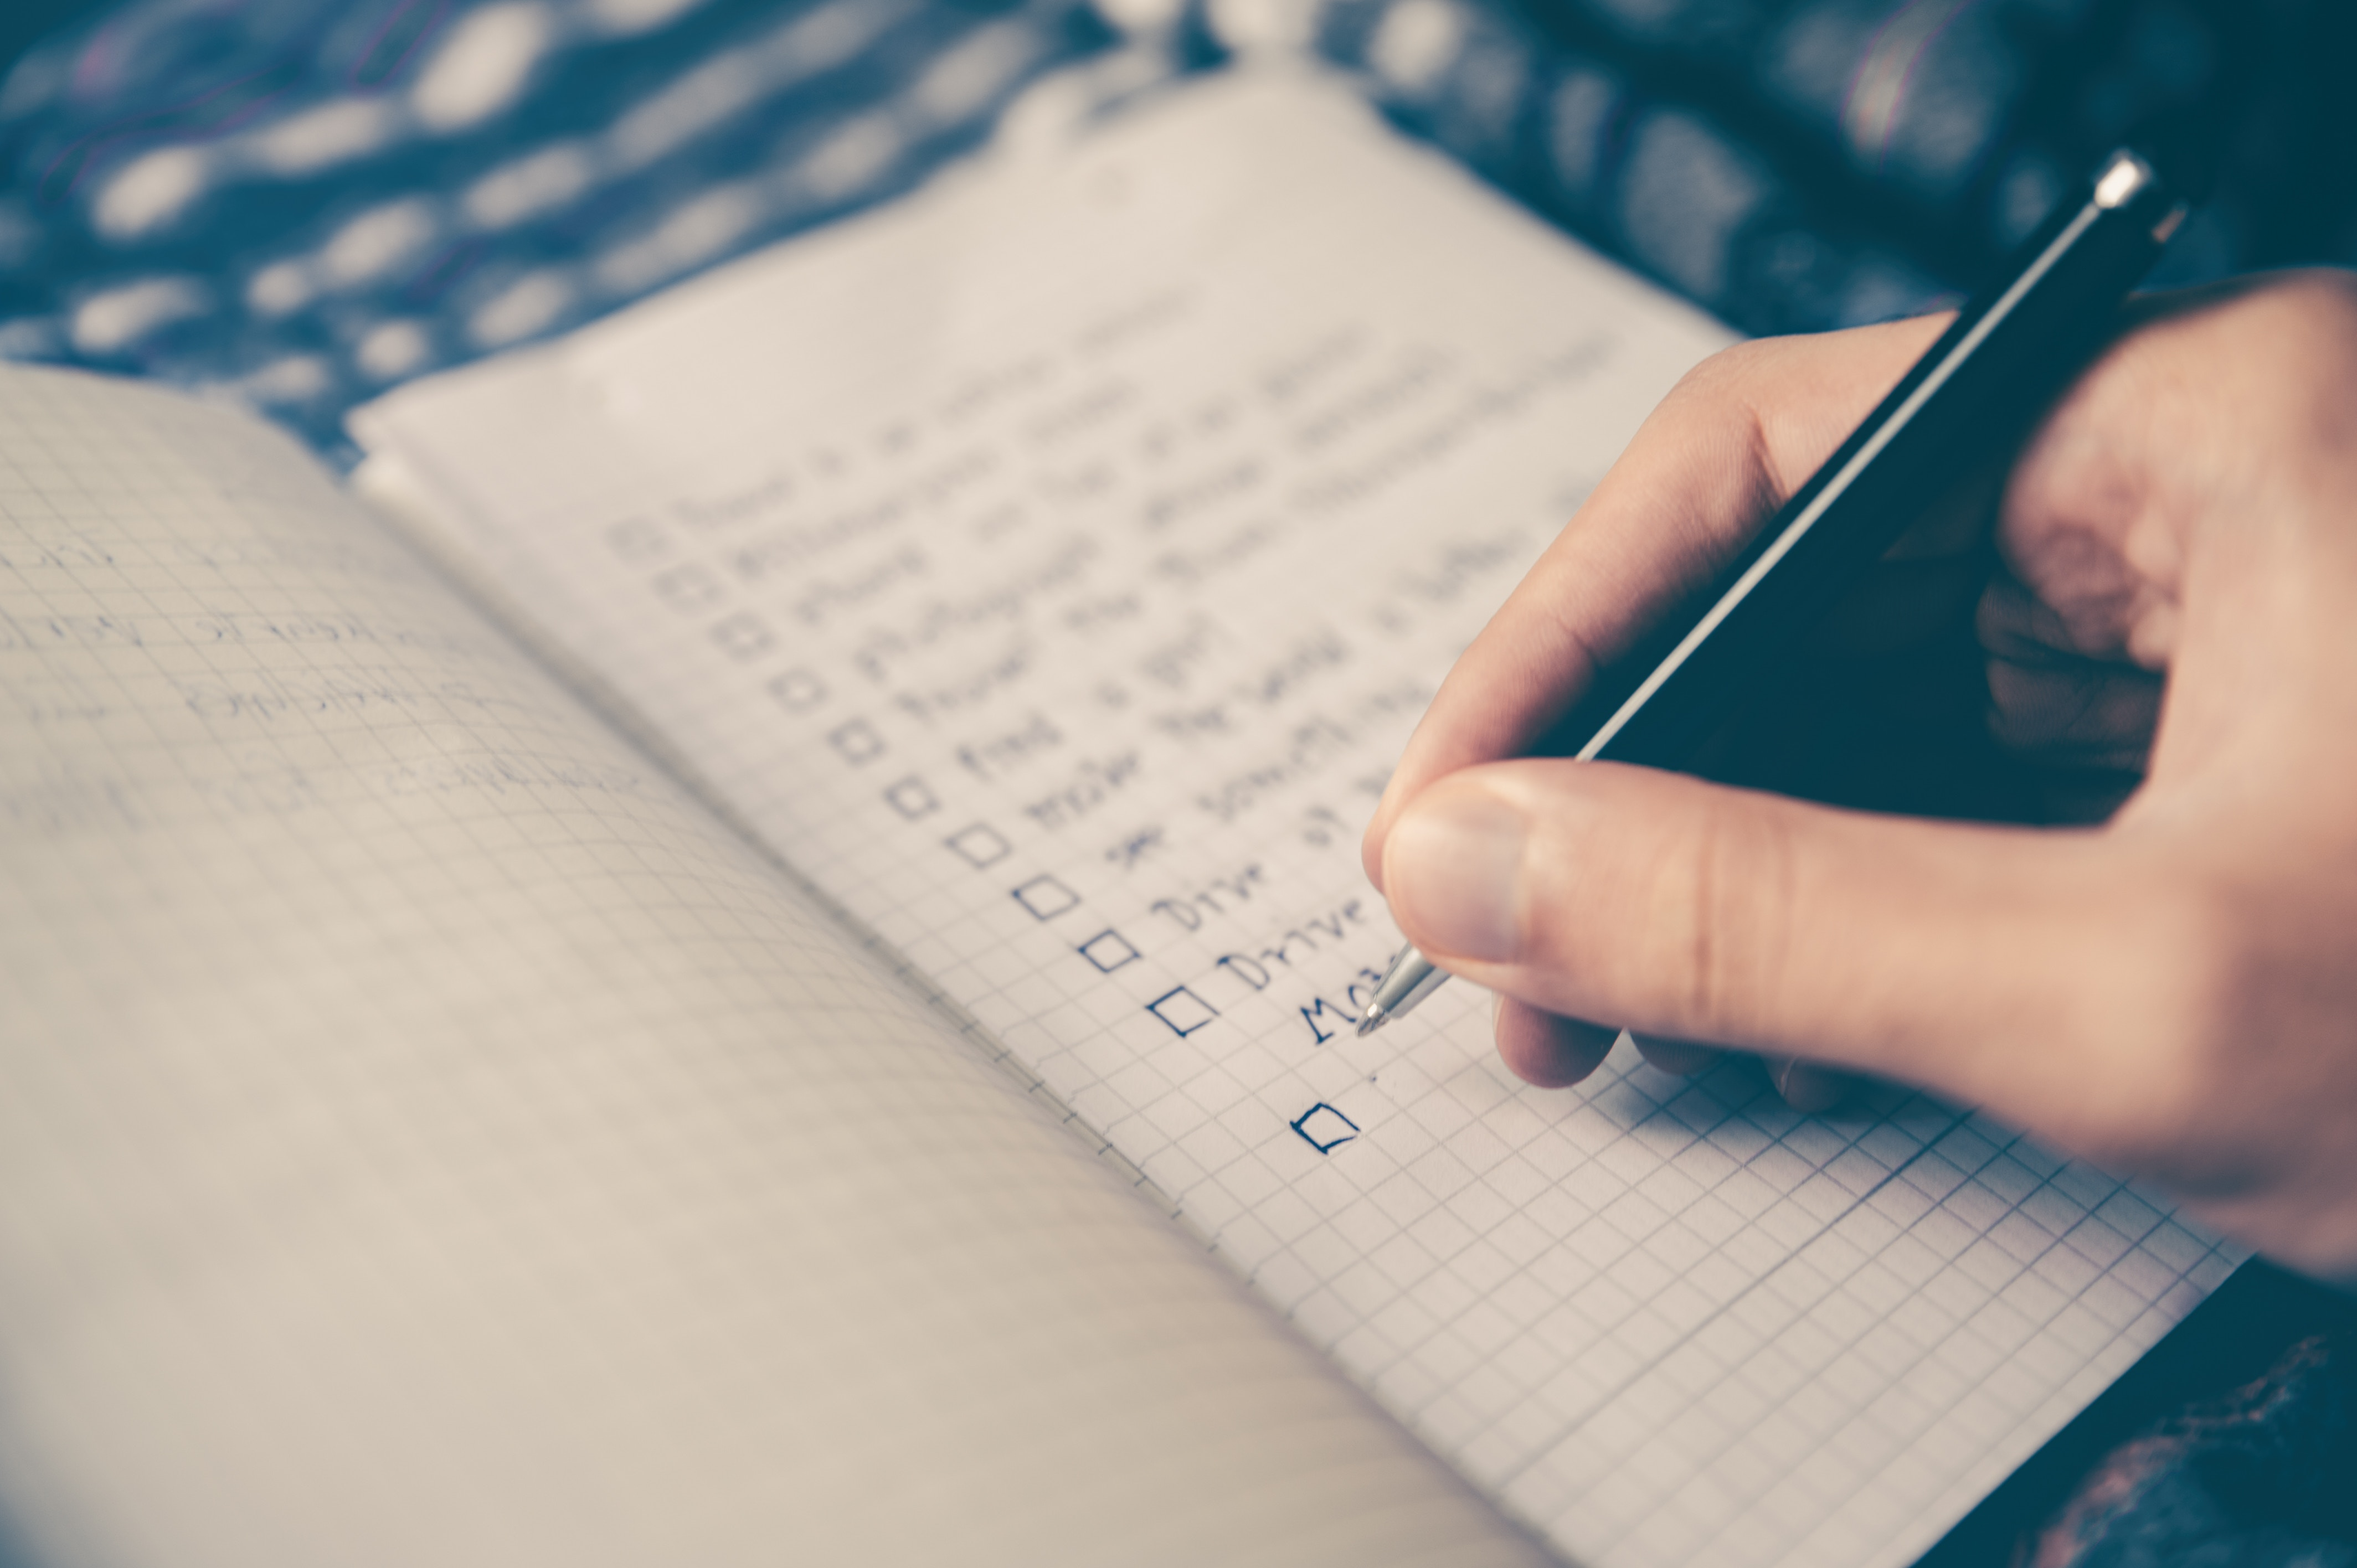 New Year, New Site? Checklist for a Website Redesign Featured Image